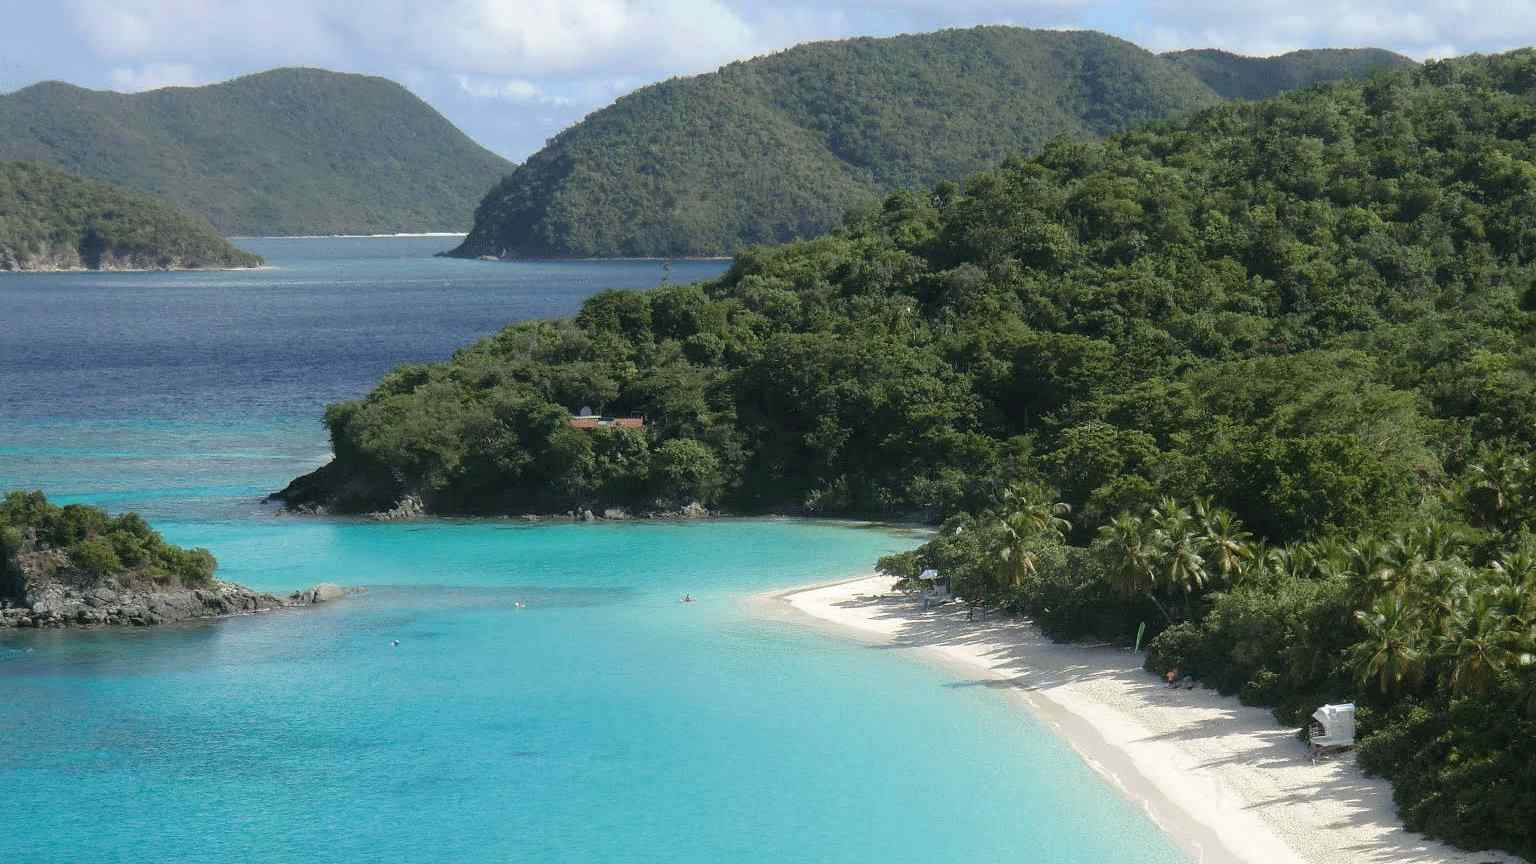 Saint Croix is the most gay friendly of the US Virgin Islands in our opinion